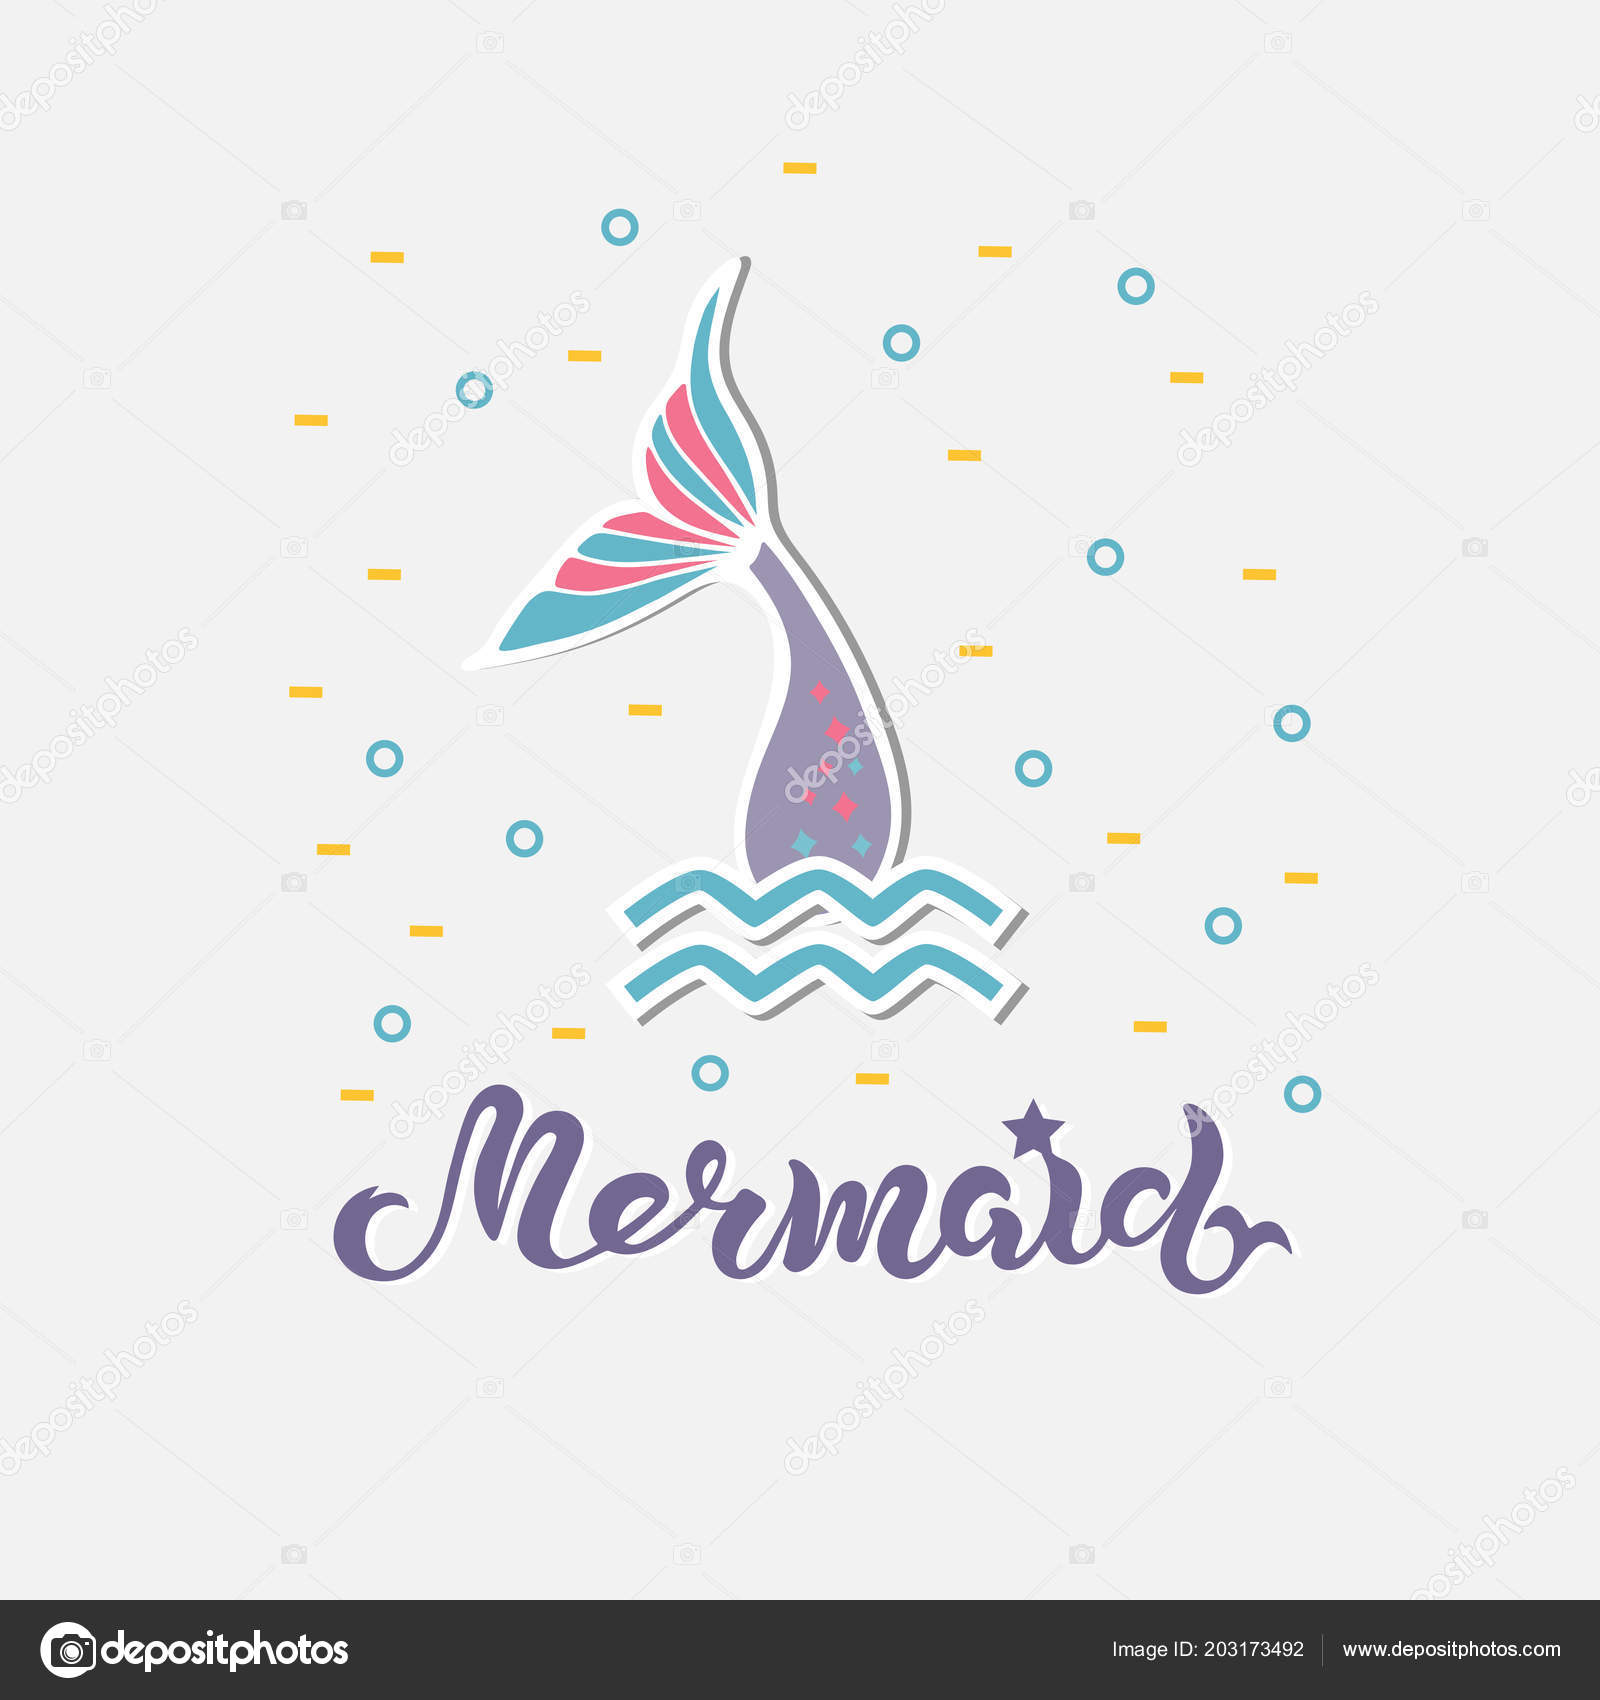 Vector illustration mermaid tail mermaid handwritten lettering logo vector illustration with mermaid tail mermaid handwritten lettering as logo patch sticker cake topperstemplate for mermaid style party invitation stopboris